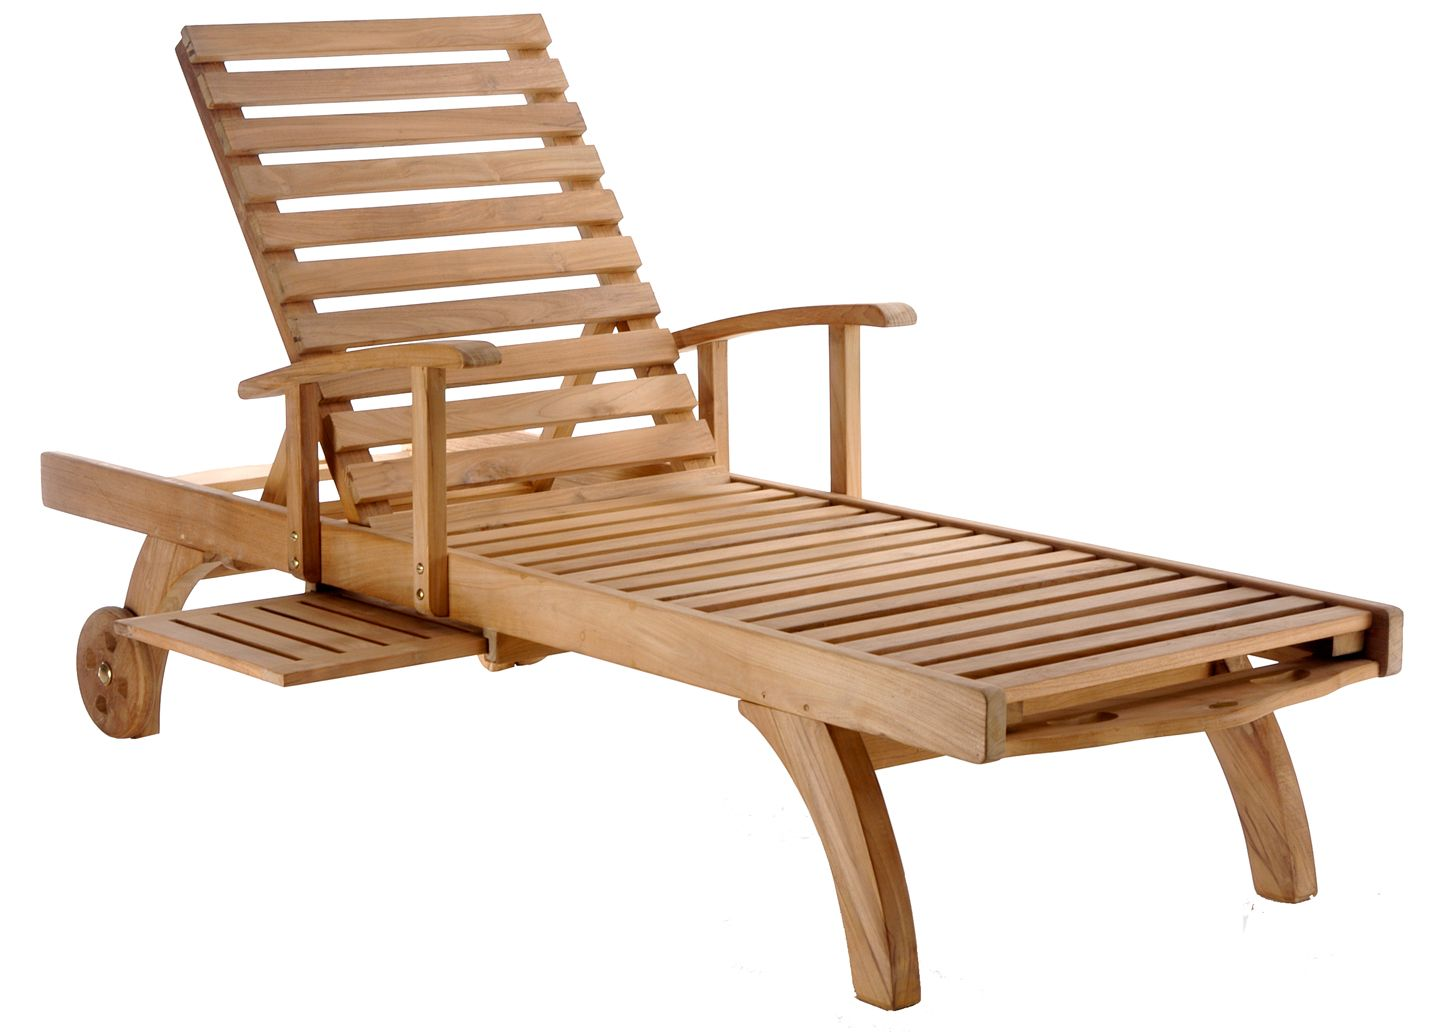 Teak Wood Bahama Pool Lounger by Chic Teak only 717.38 in